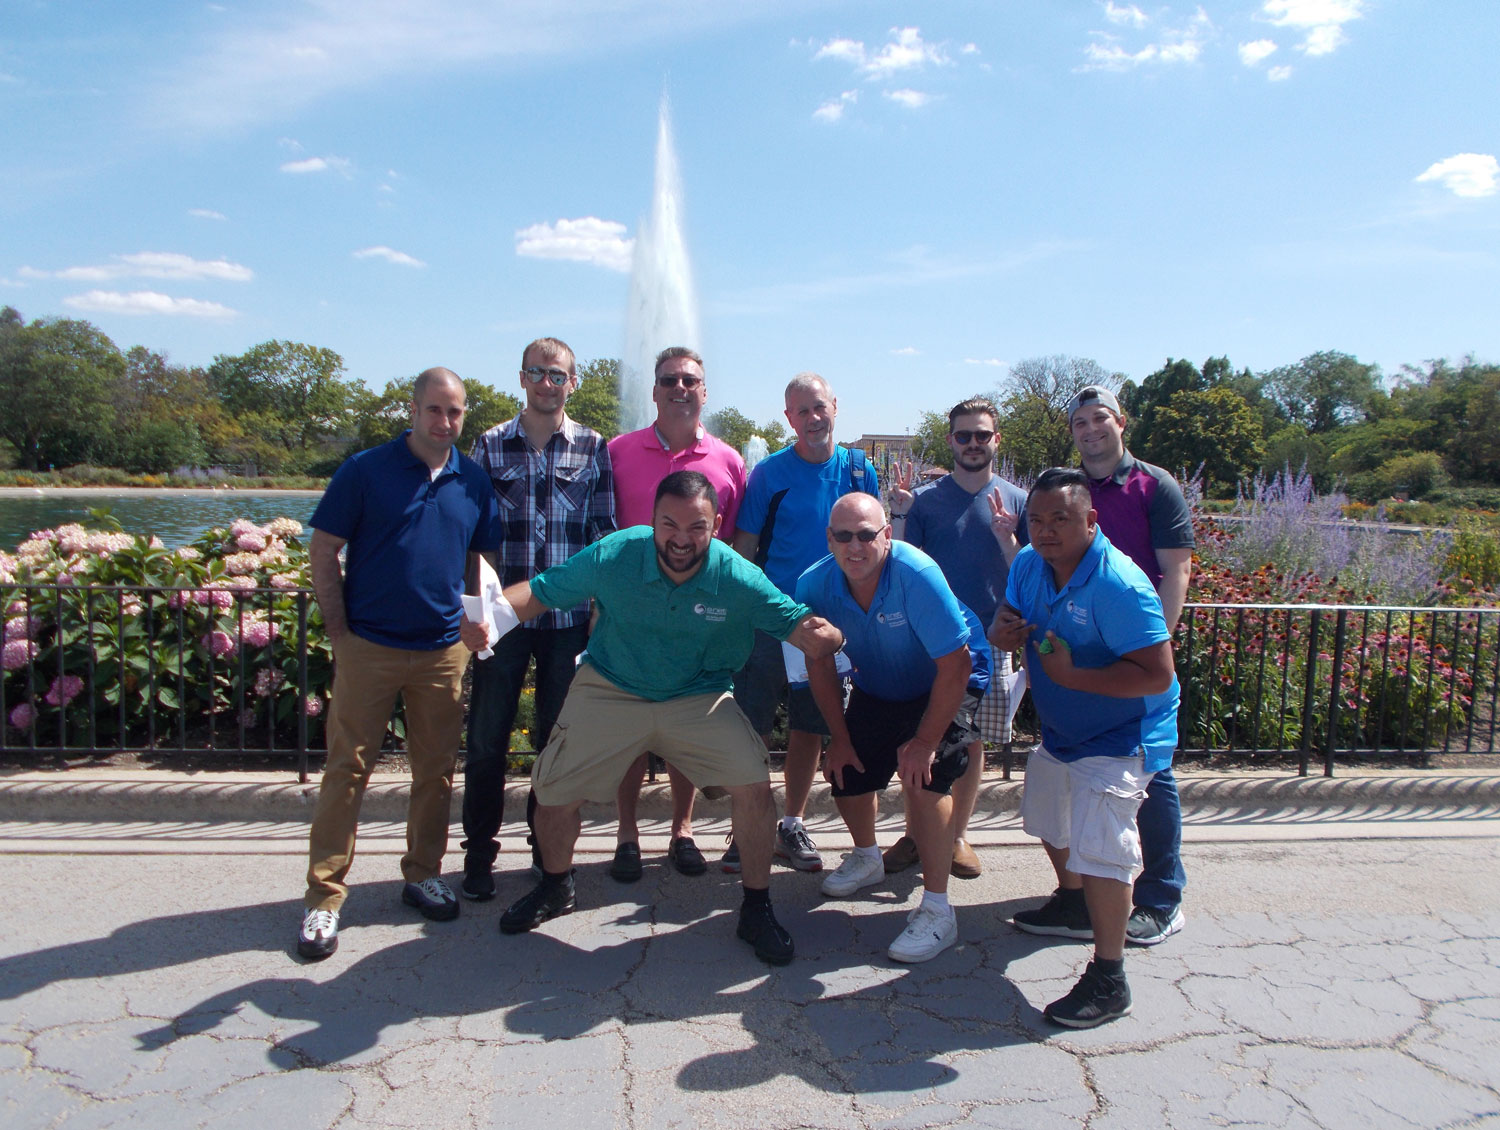 Team Funny McFuns enjoying the sunshine at the Roosevelt fountain.